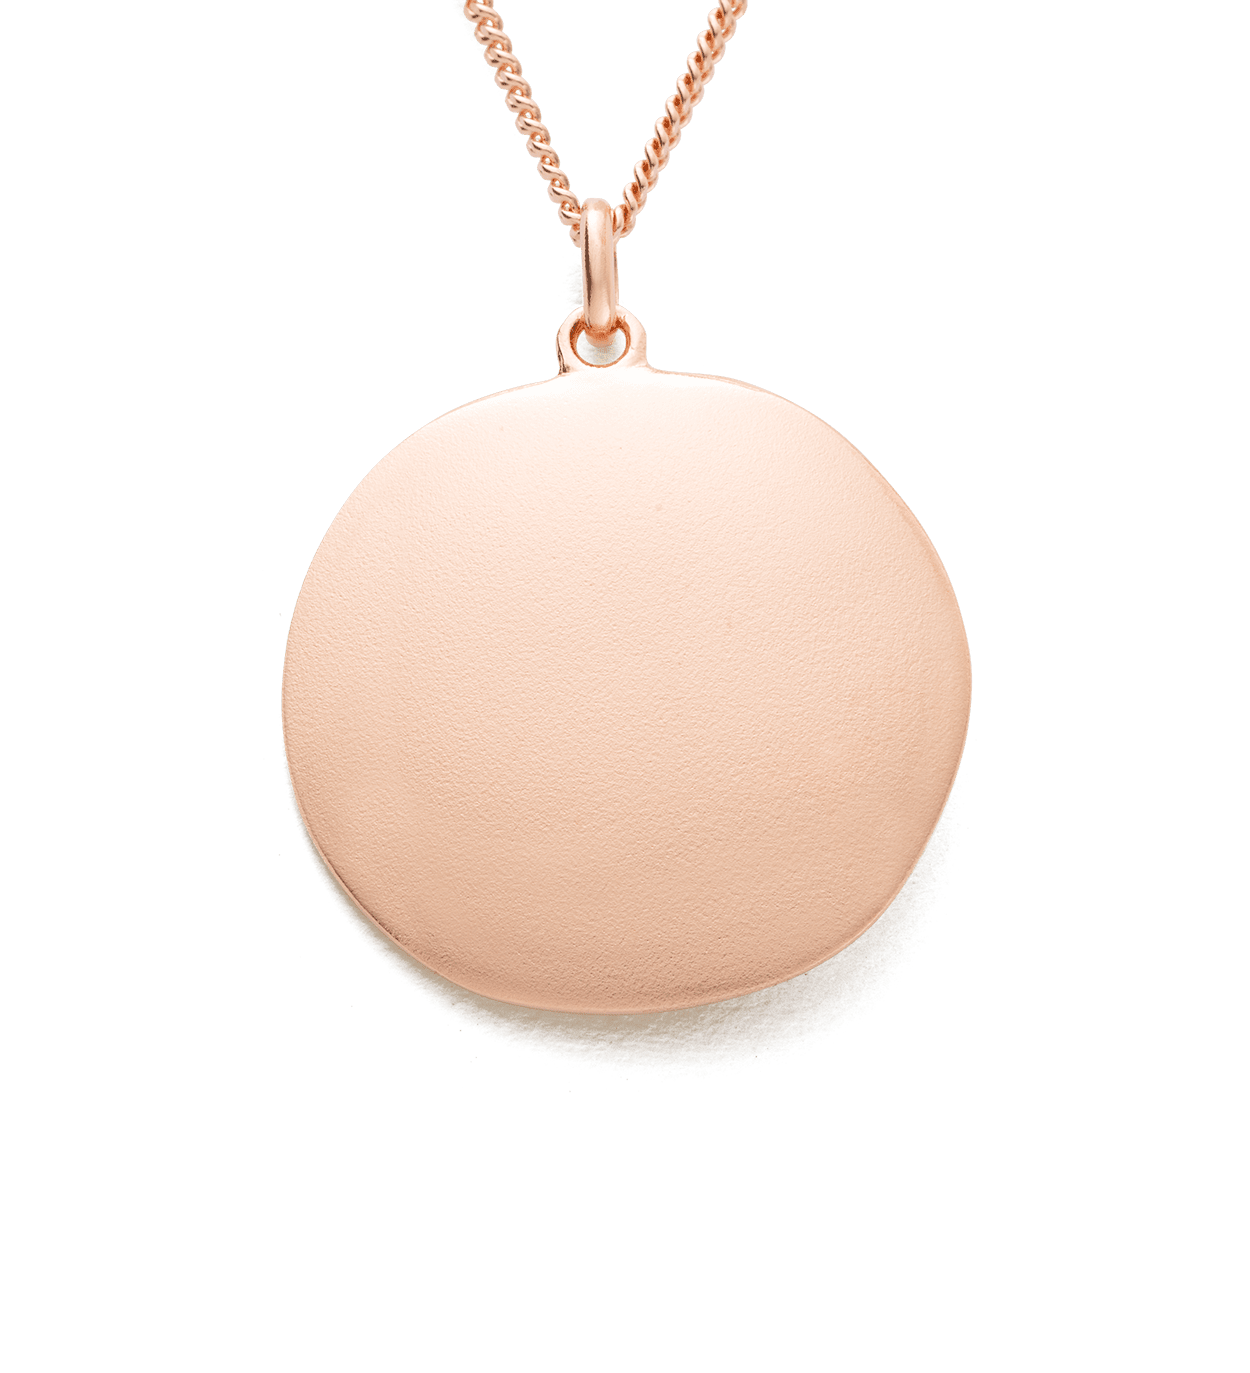 BY THE SEA COIN NECKLACE (18K ROSE GOLD VERMEIL)